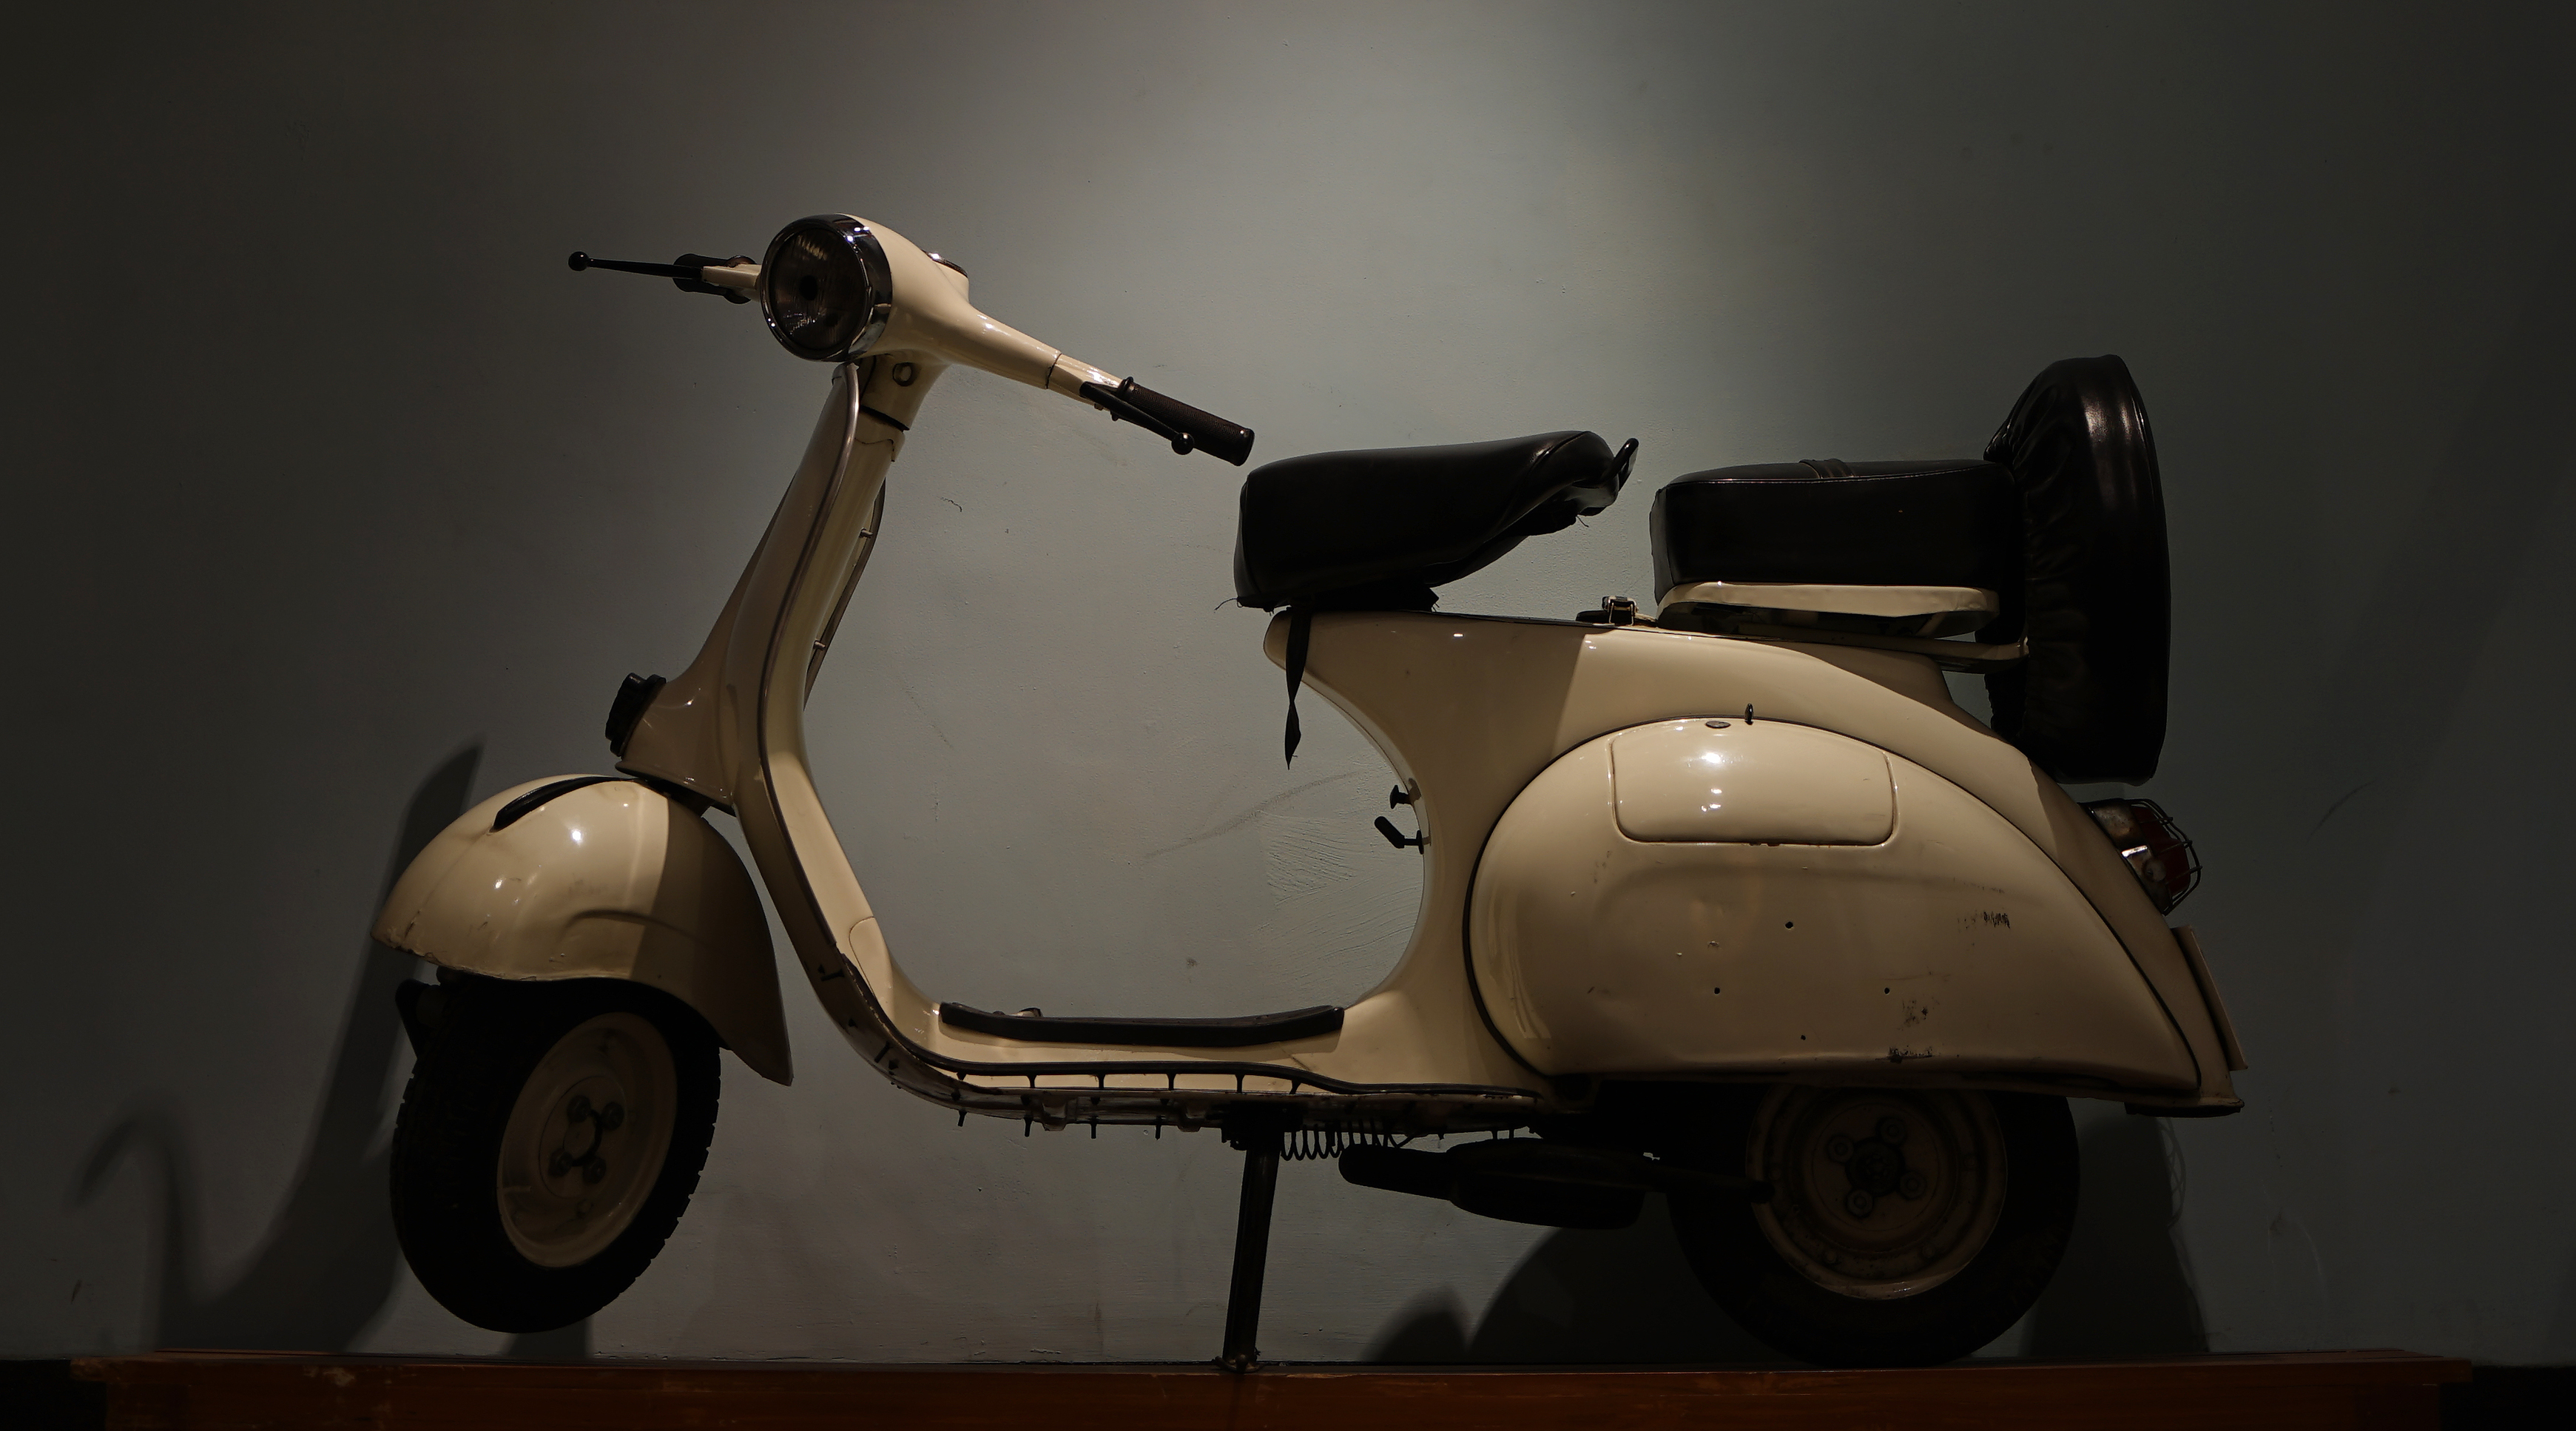 OLD MODEL SCOOTER | Professional Photography Community Website Online